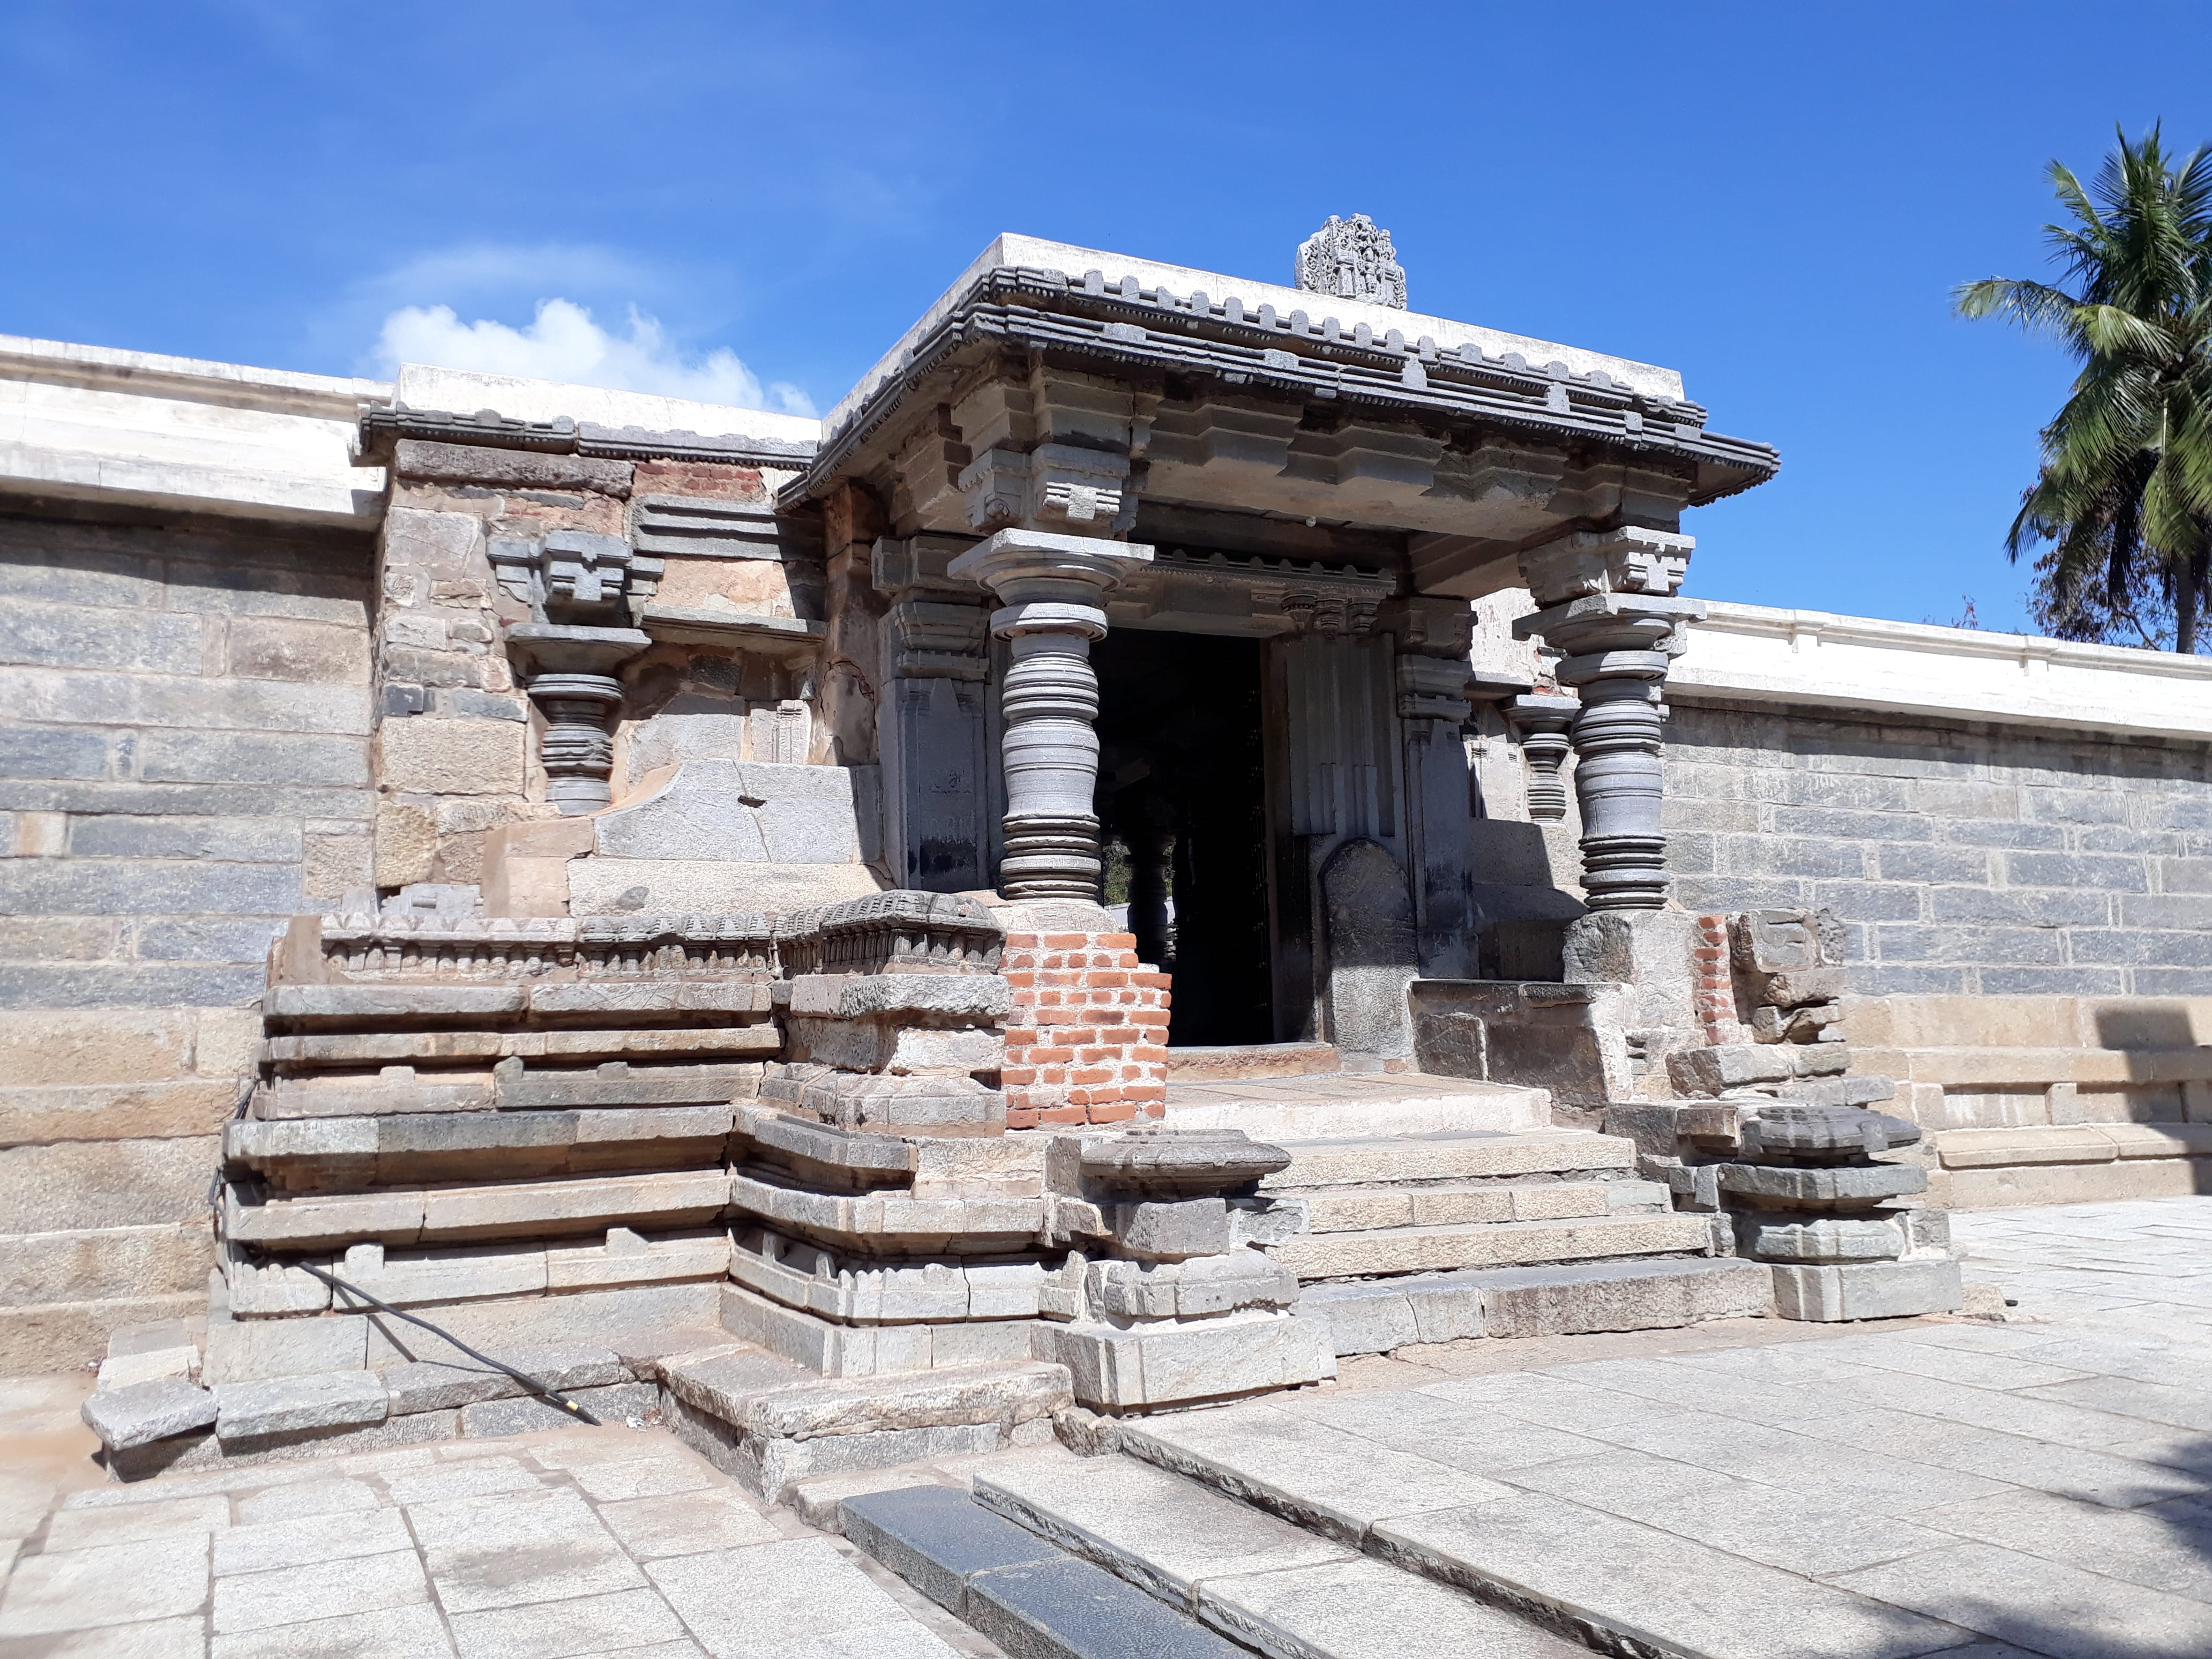 The main temple gate